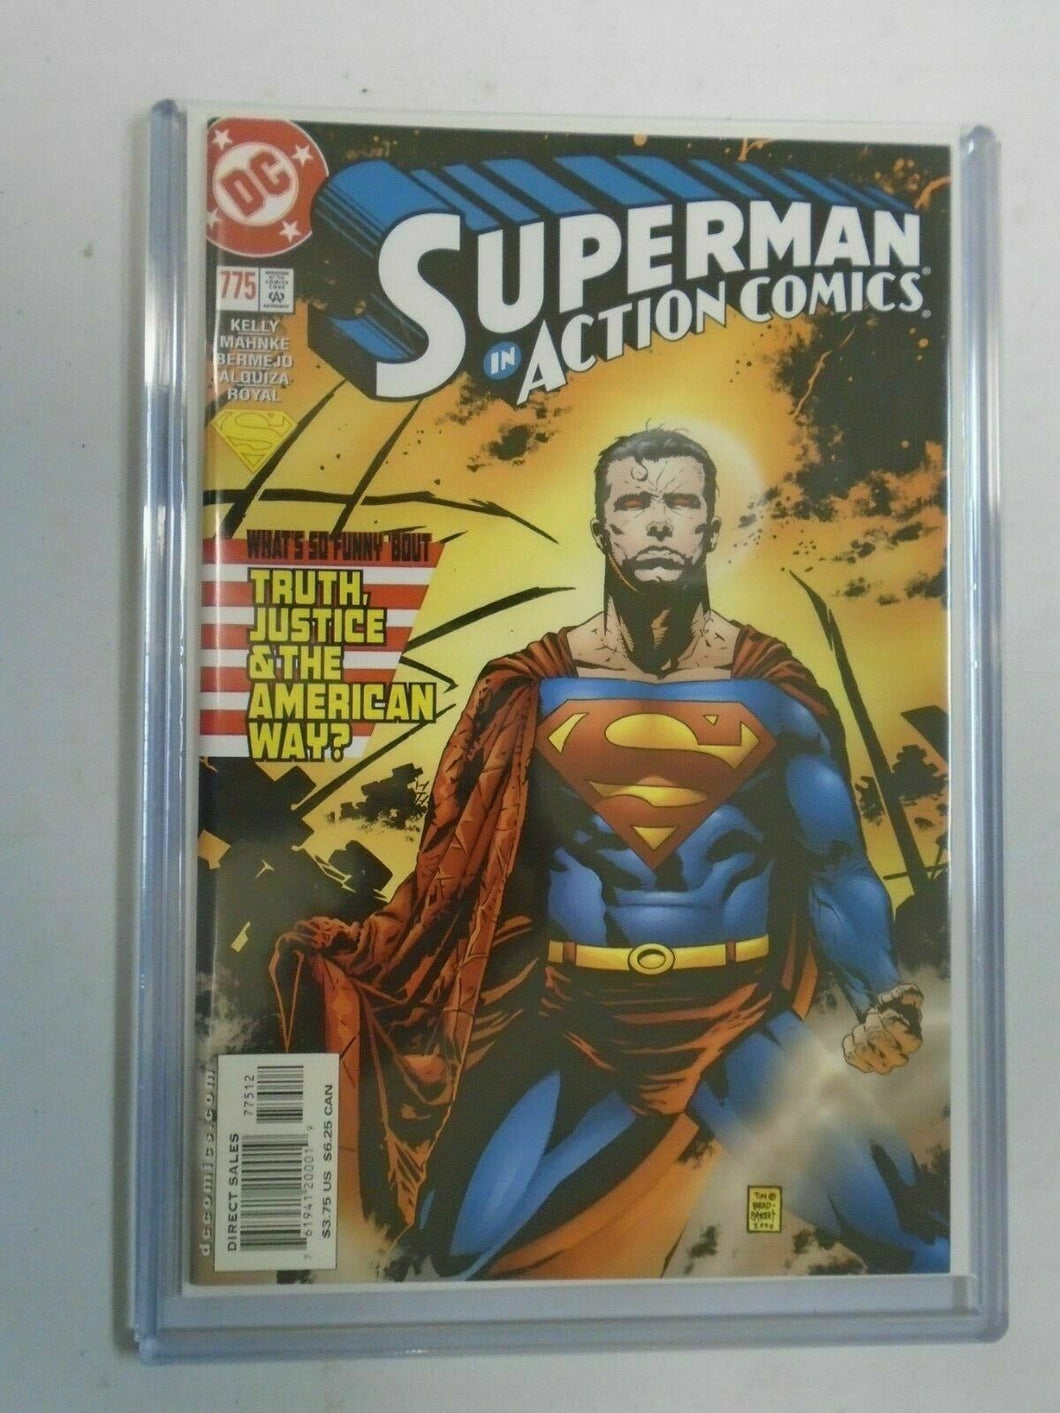 Action Comics #775 Superman (2nd Print) CGC 9.4 NM (2001)